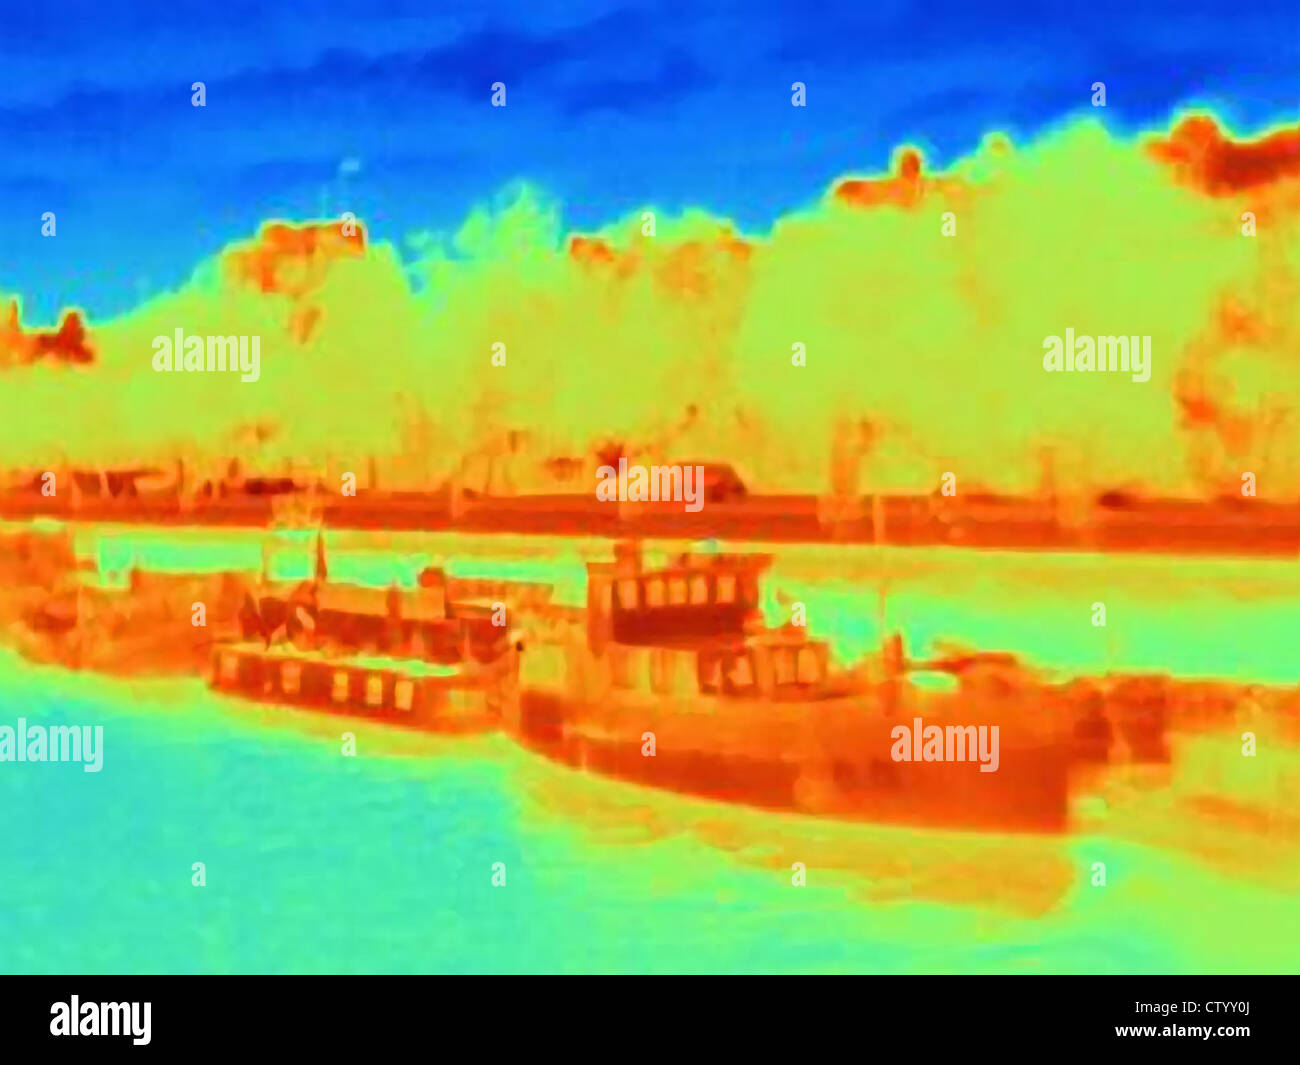 Thermal image of boats on urban river - Stock Image